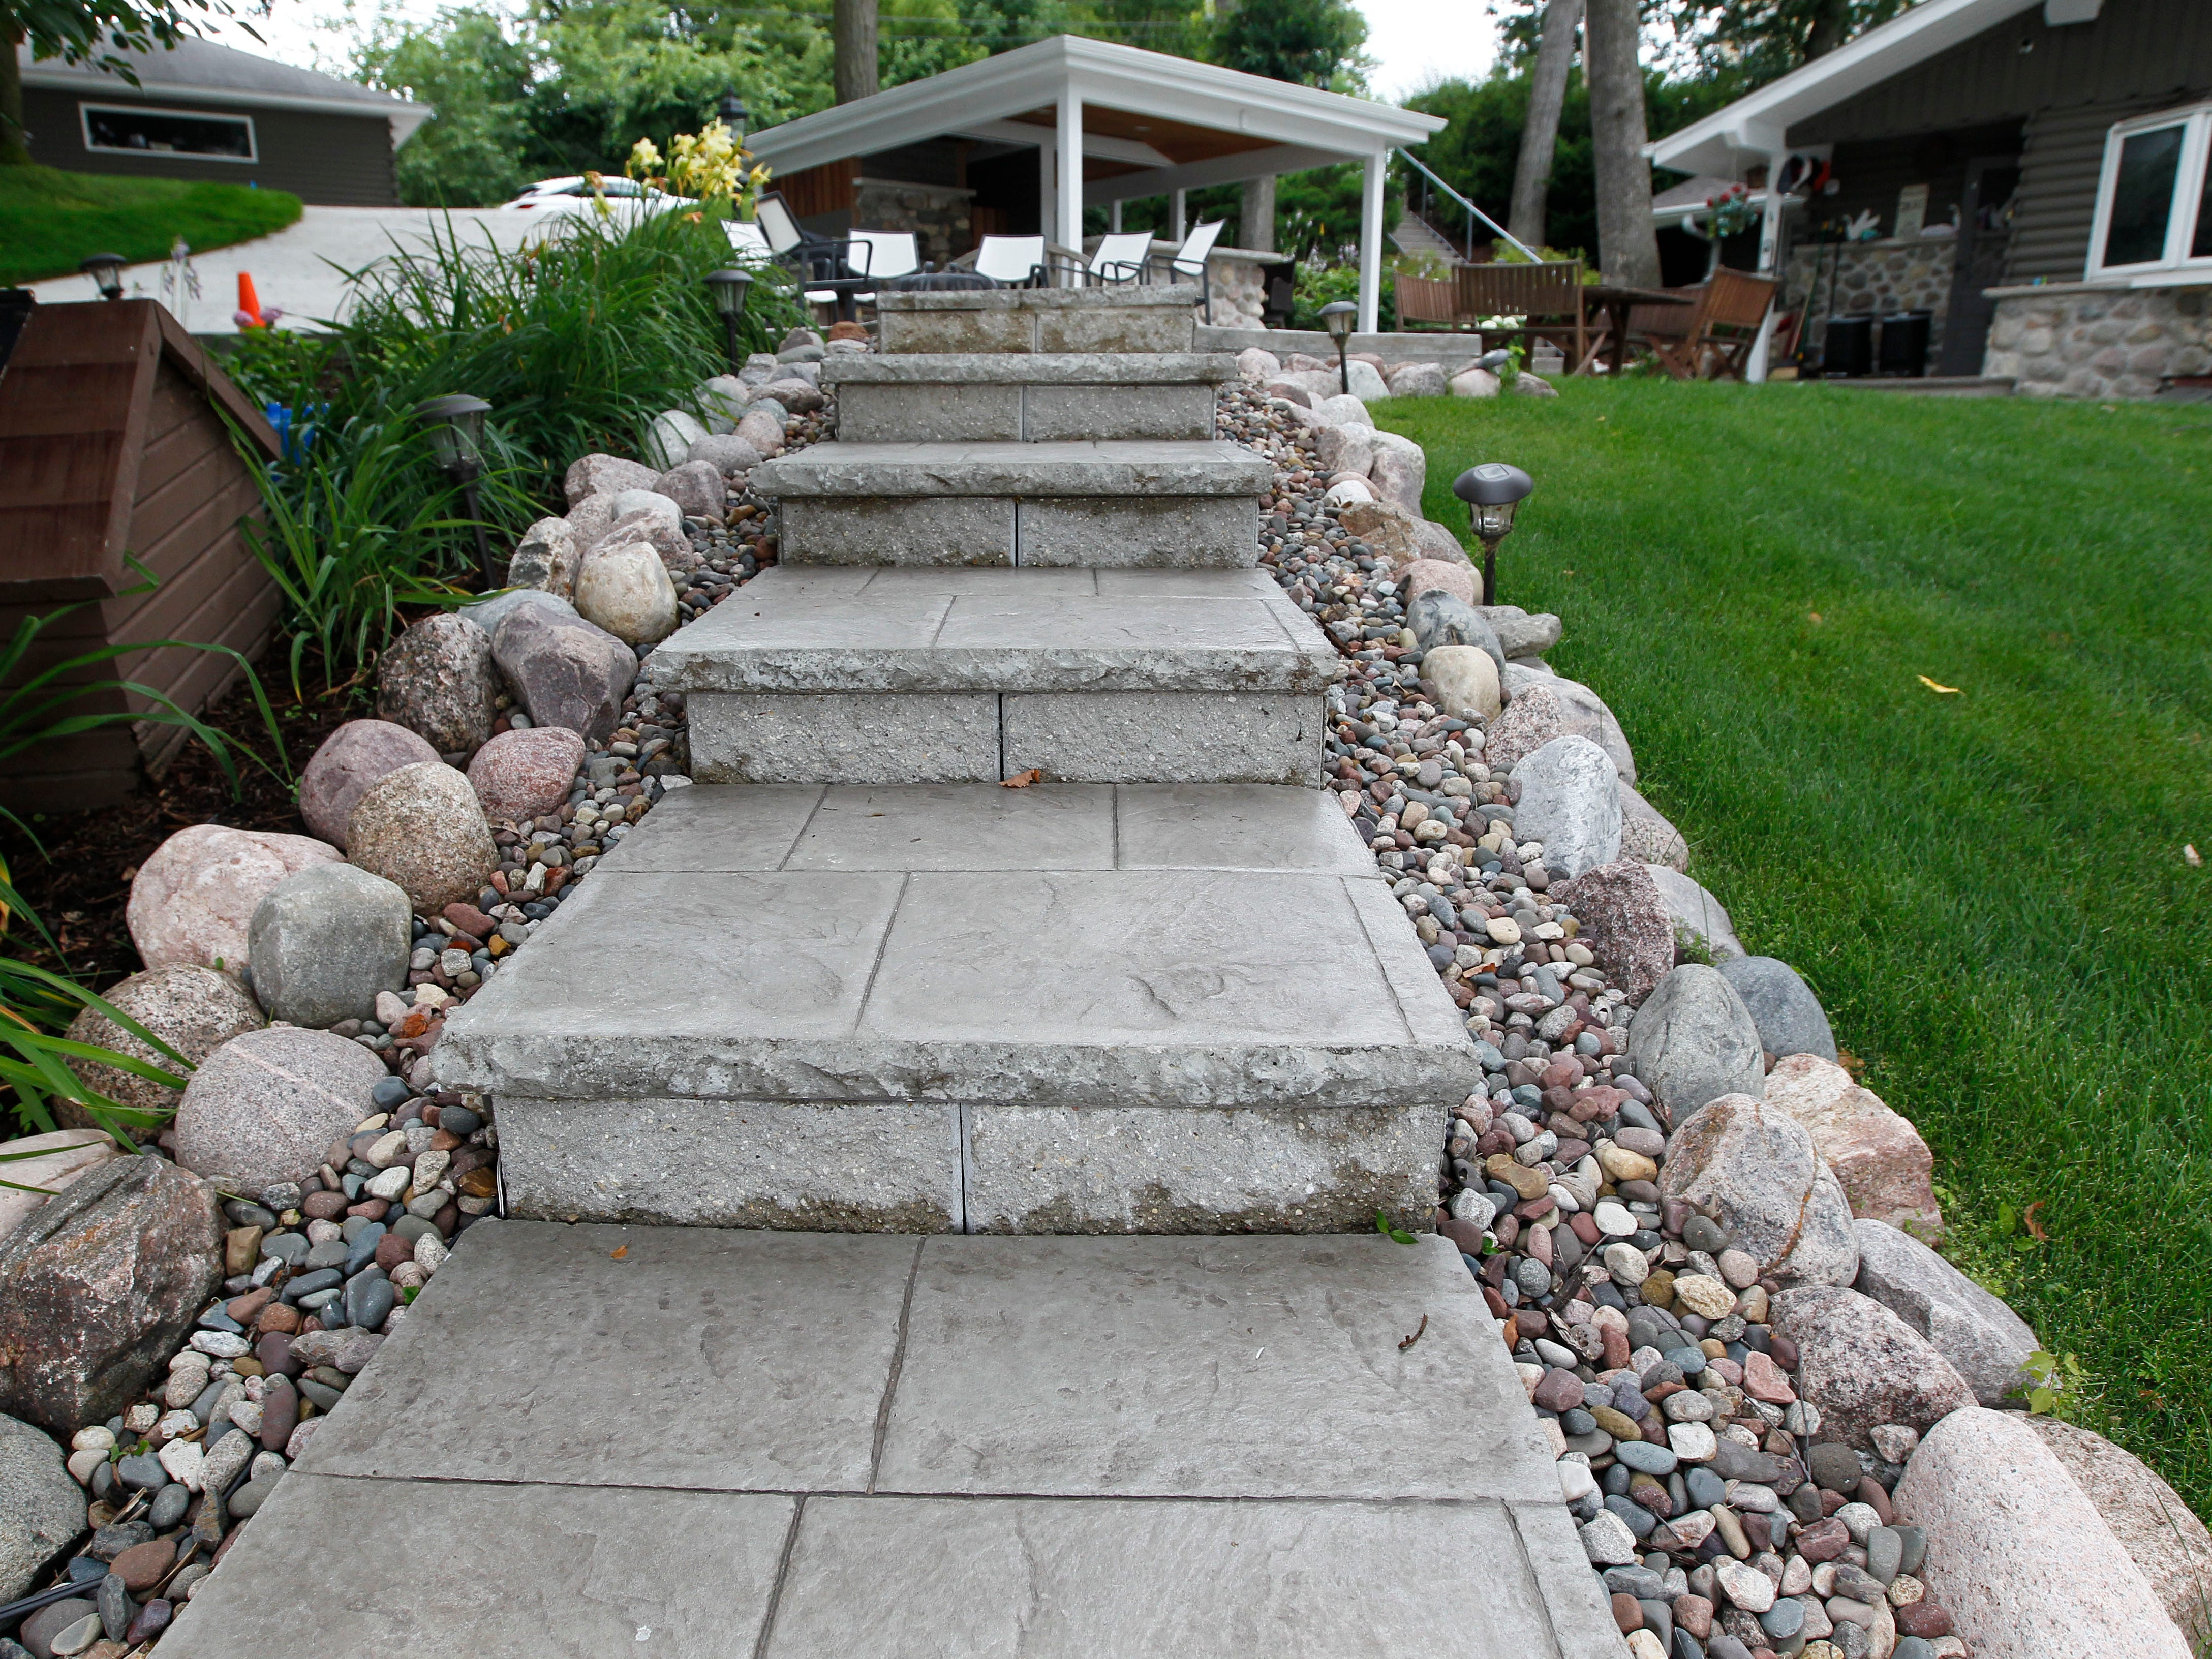 Stamped concrete stairs, dressed up with rocks, lead to the dock.